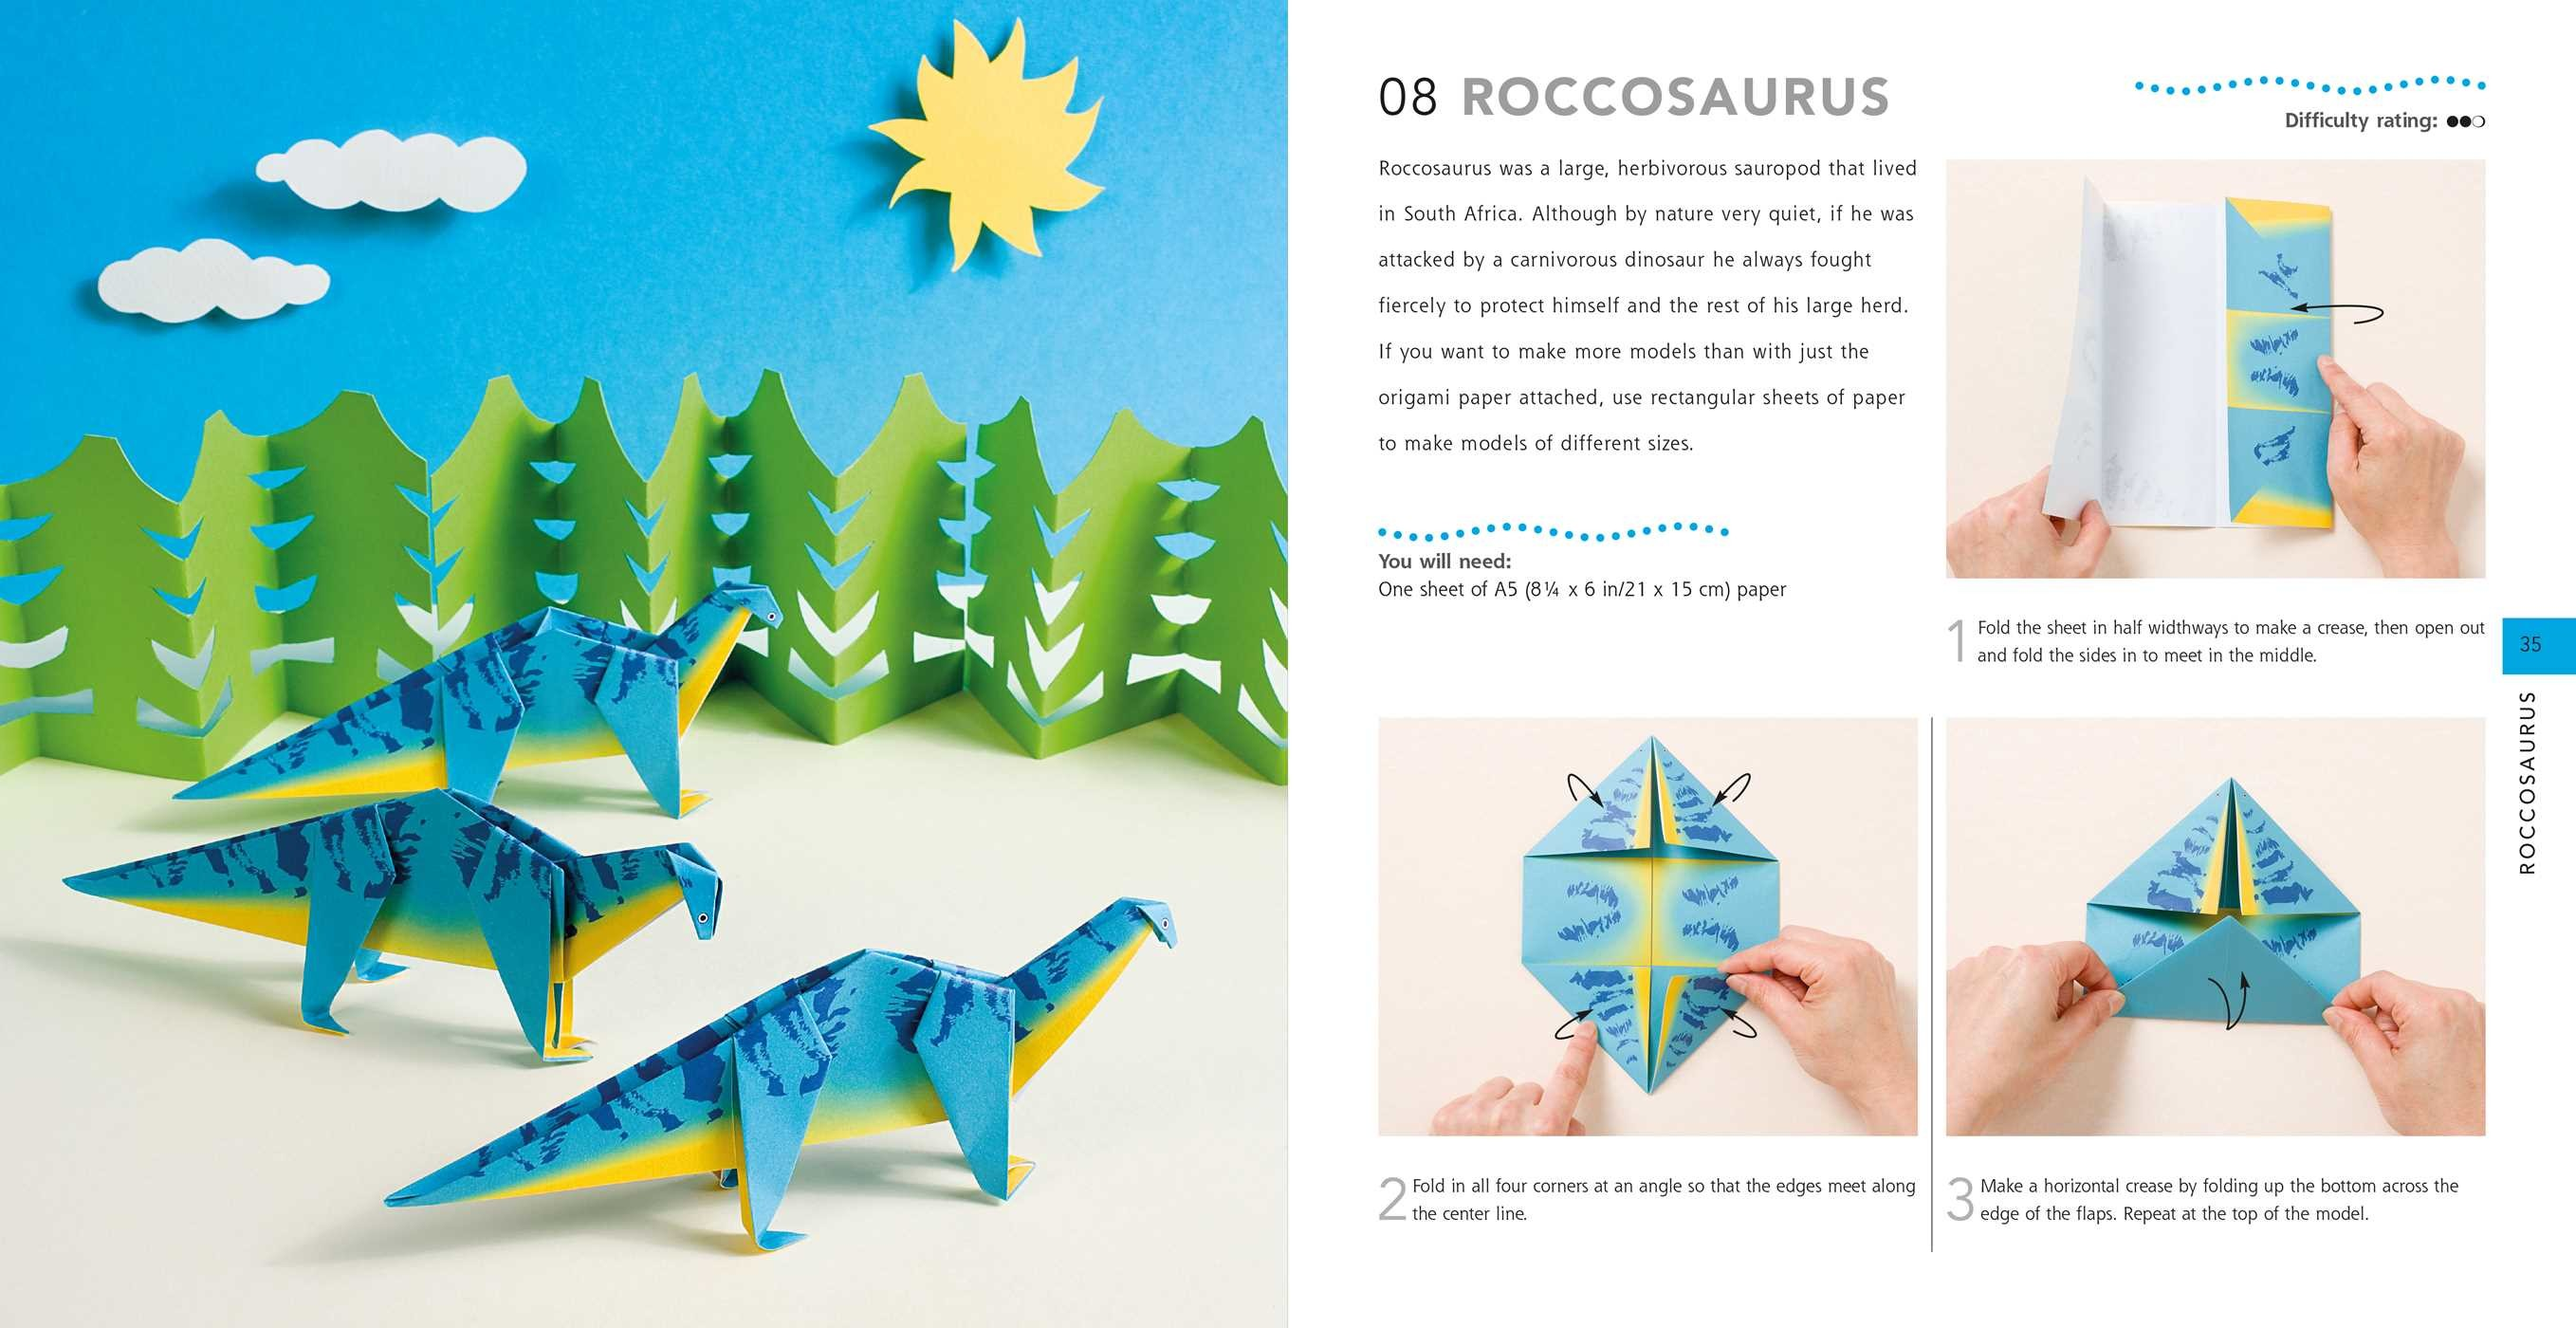 How to make paper dinosaurs 9781782496335.in01